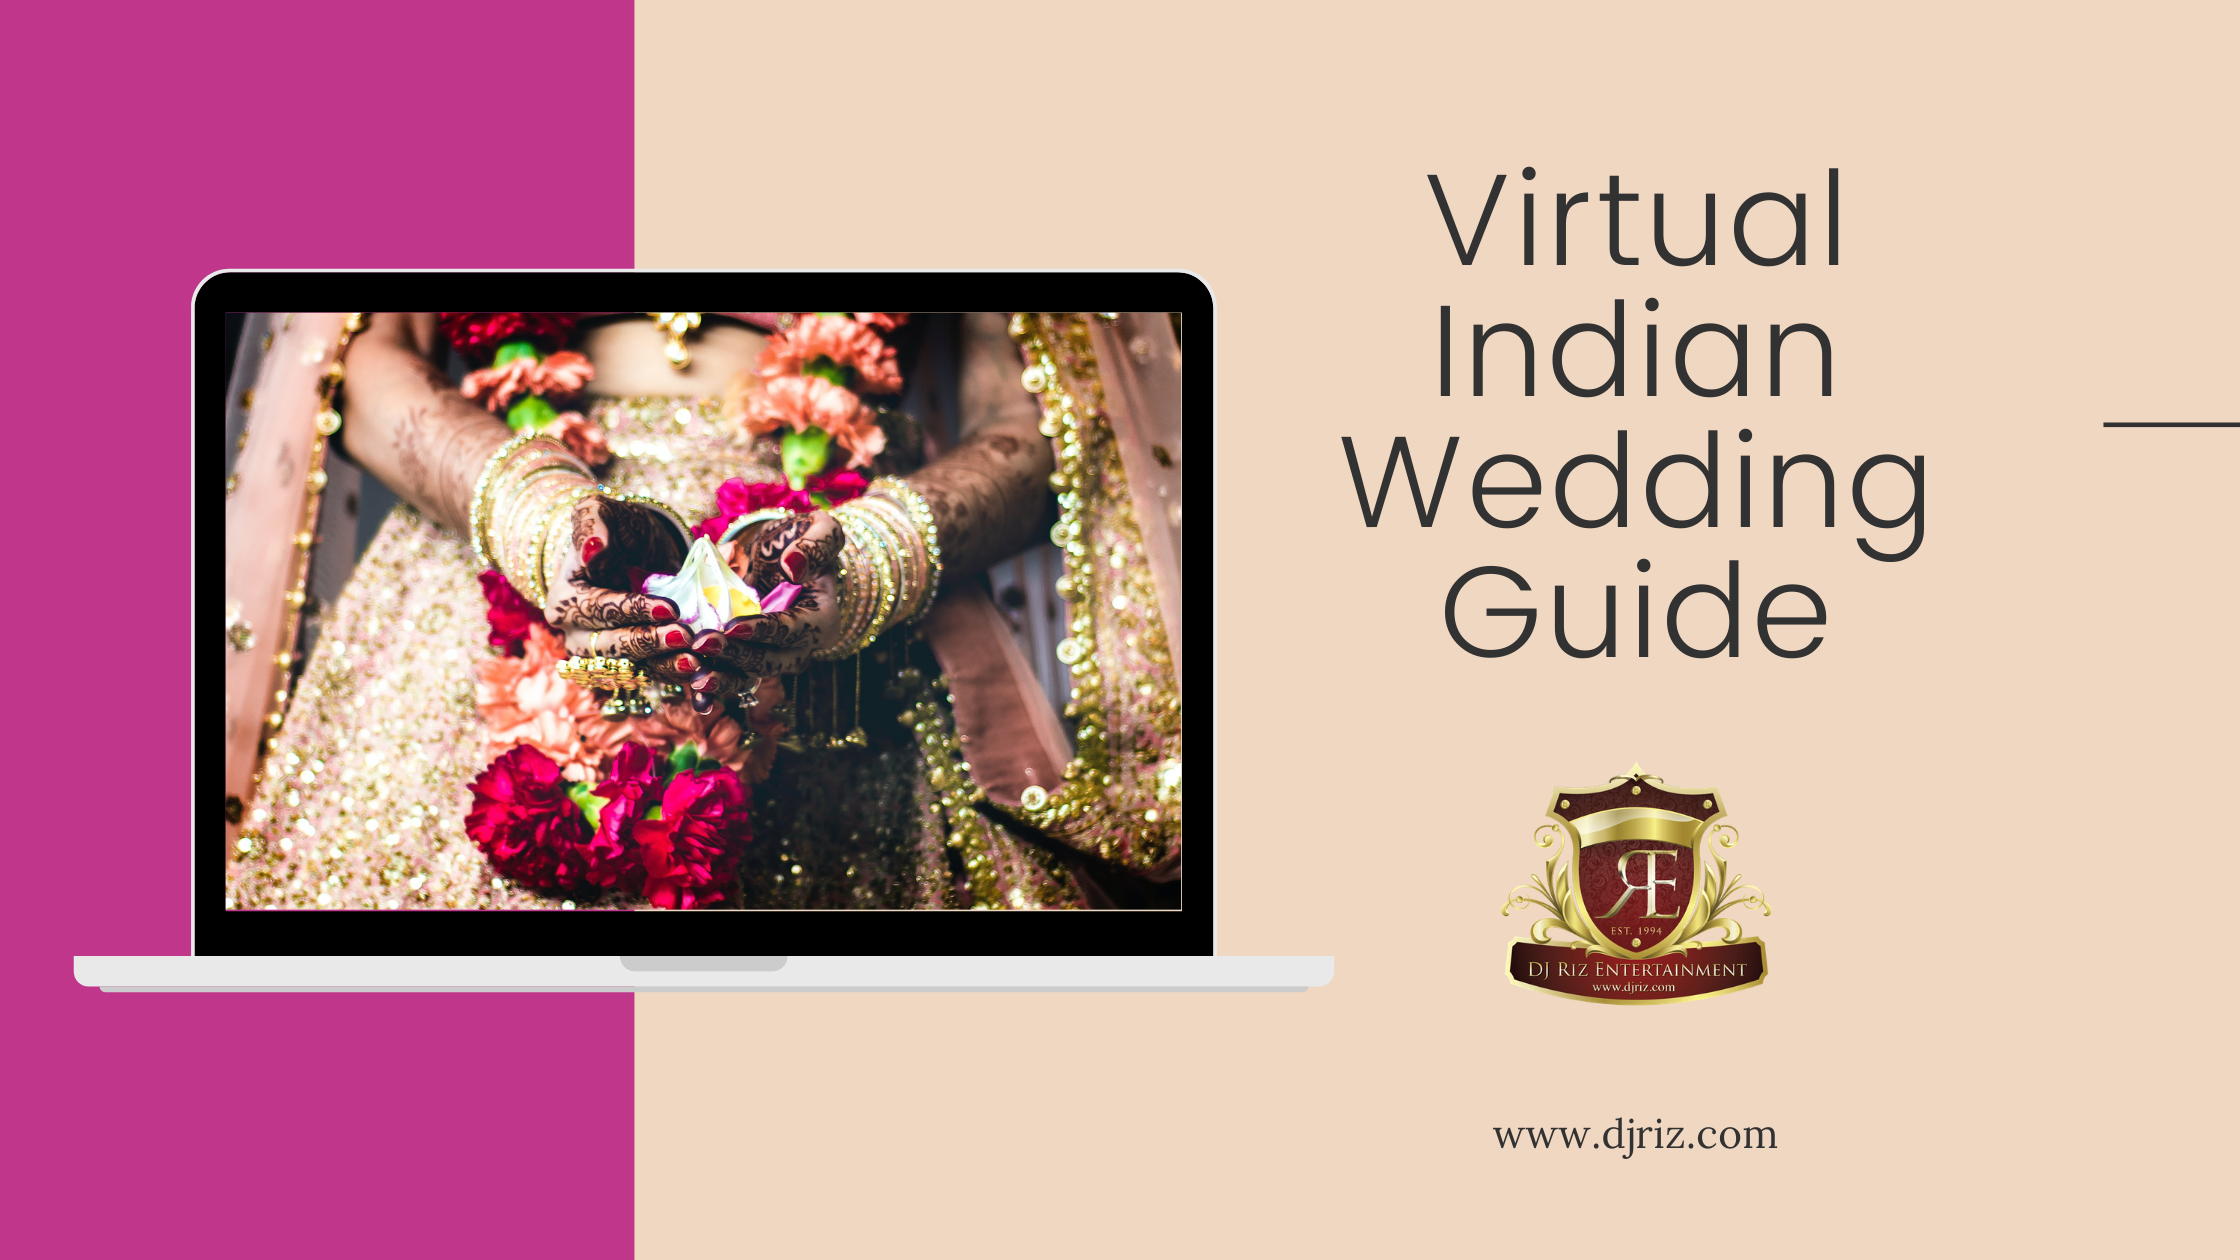 Virtual Indian Wedding Guide